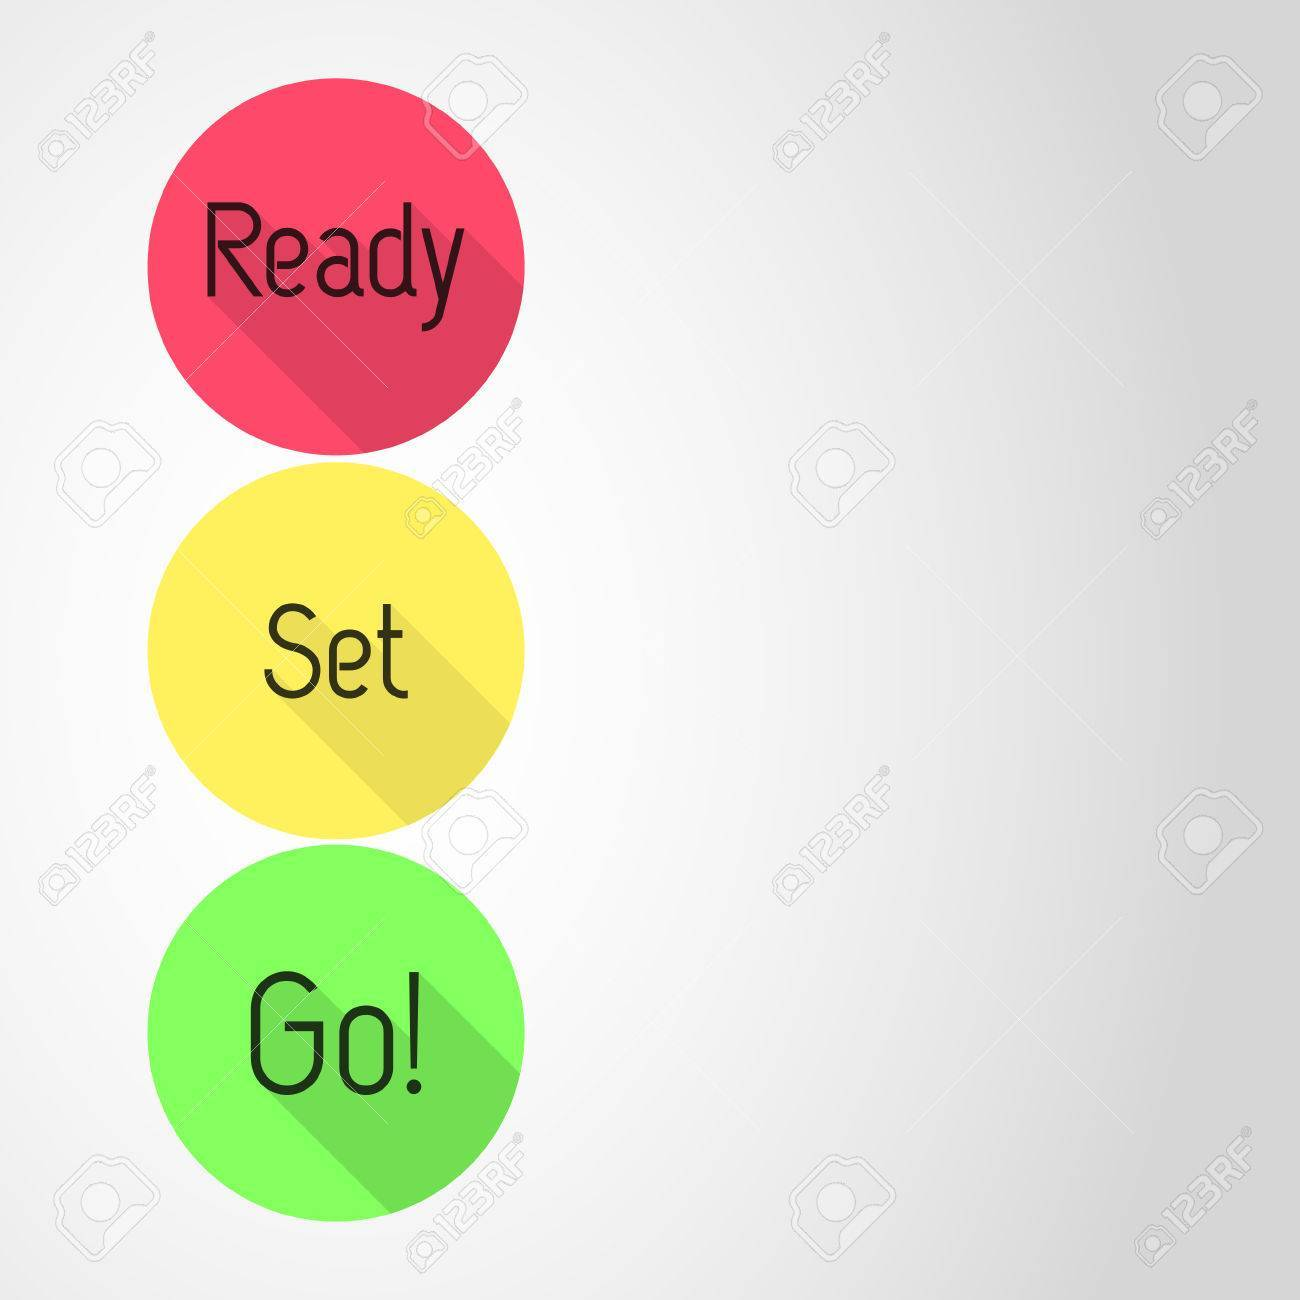 Ready set go clipart png library stock Ready – Set – Go! countdown. Three icons with Ready, Set and ... png library stock